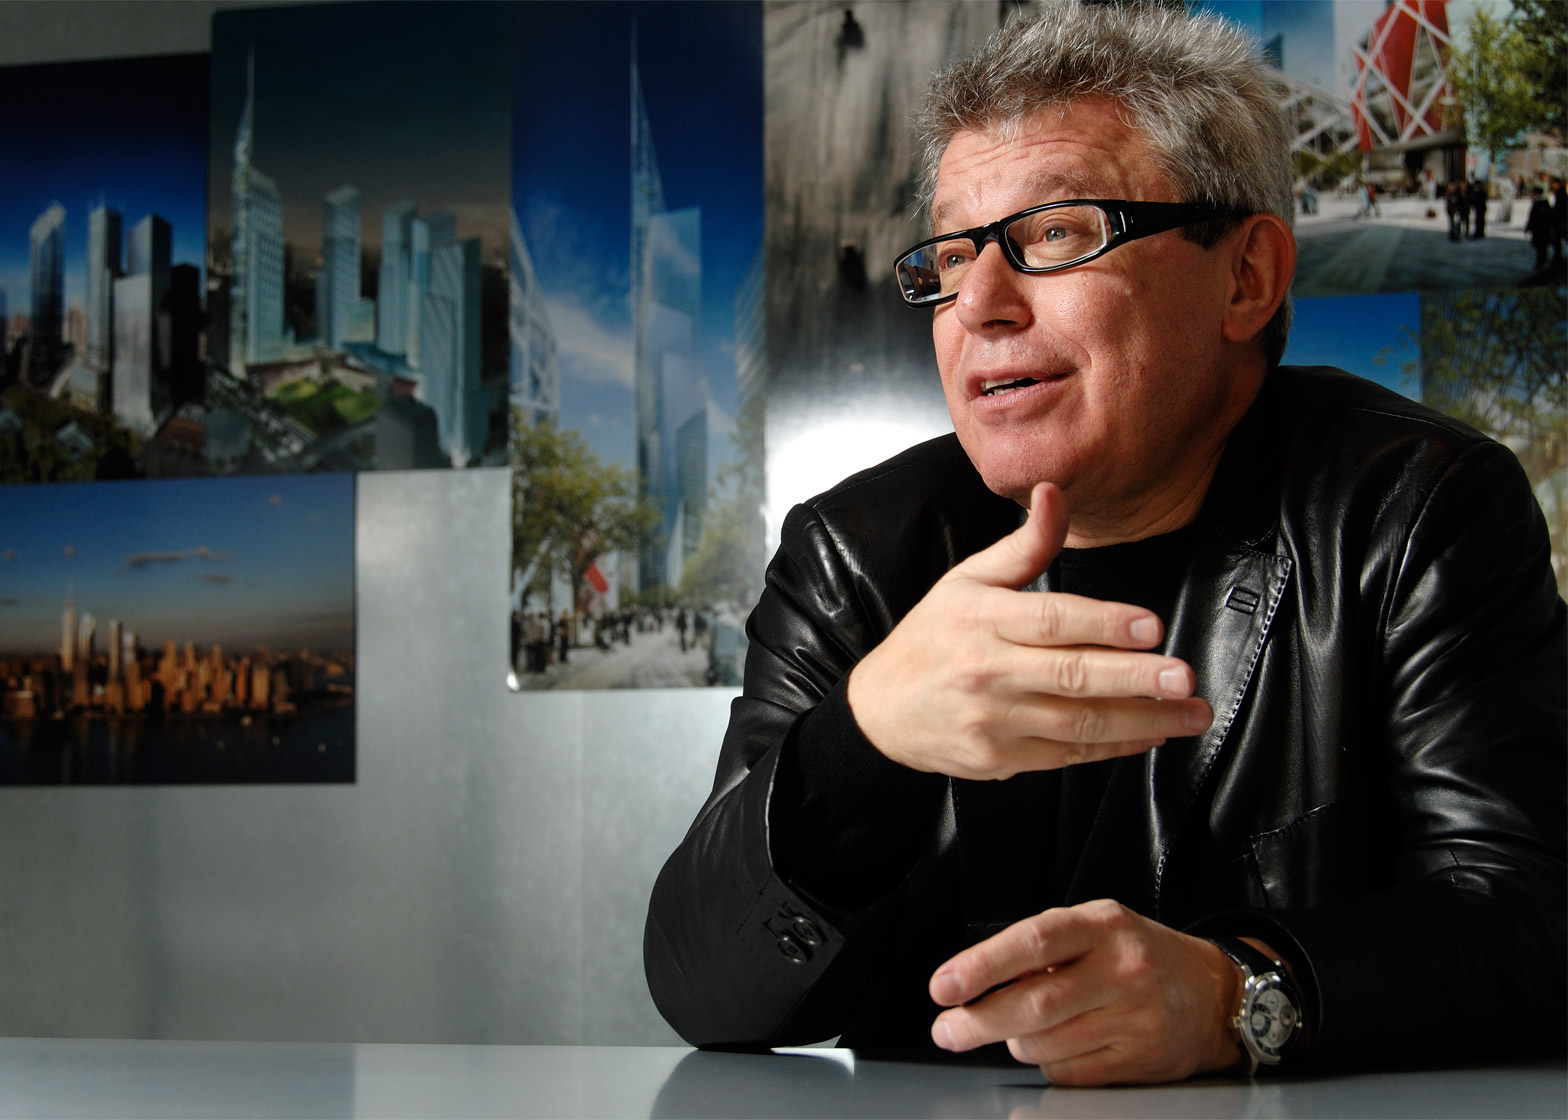 Daniel Libeskind: biography, projects, works